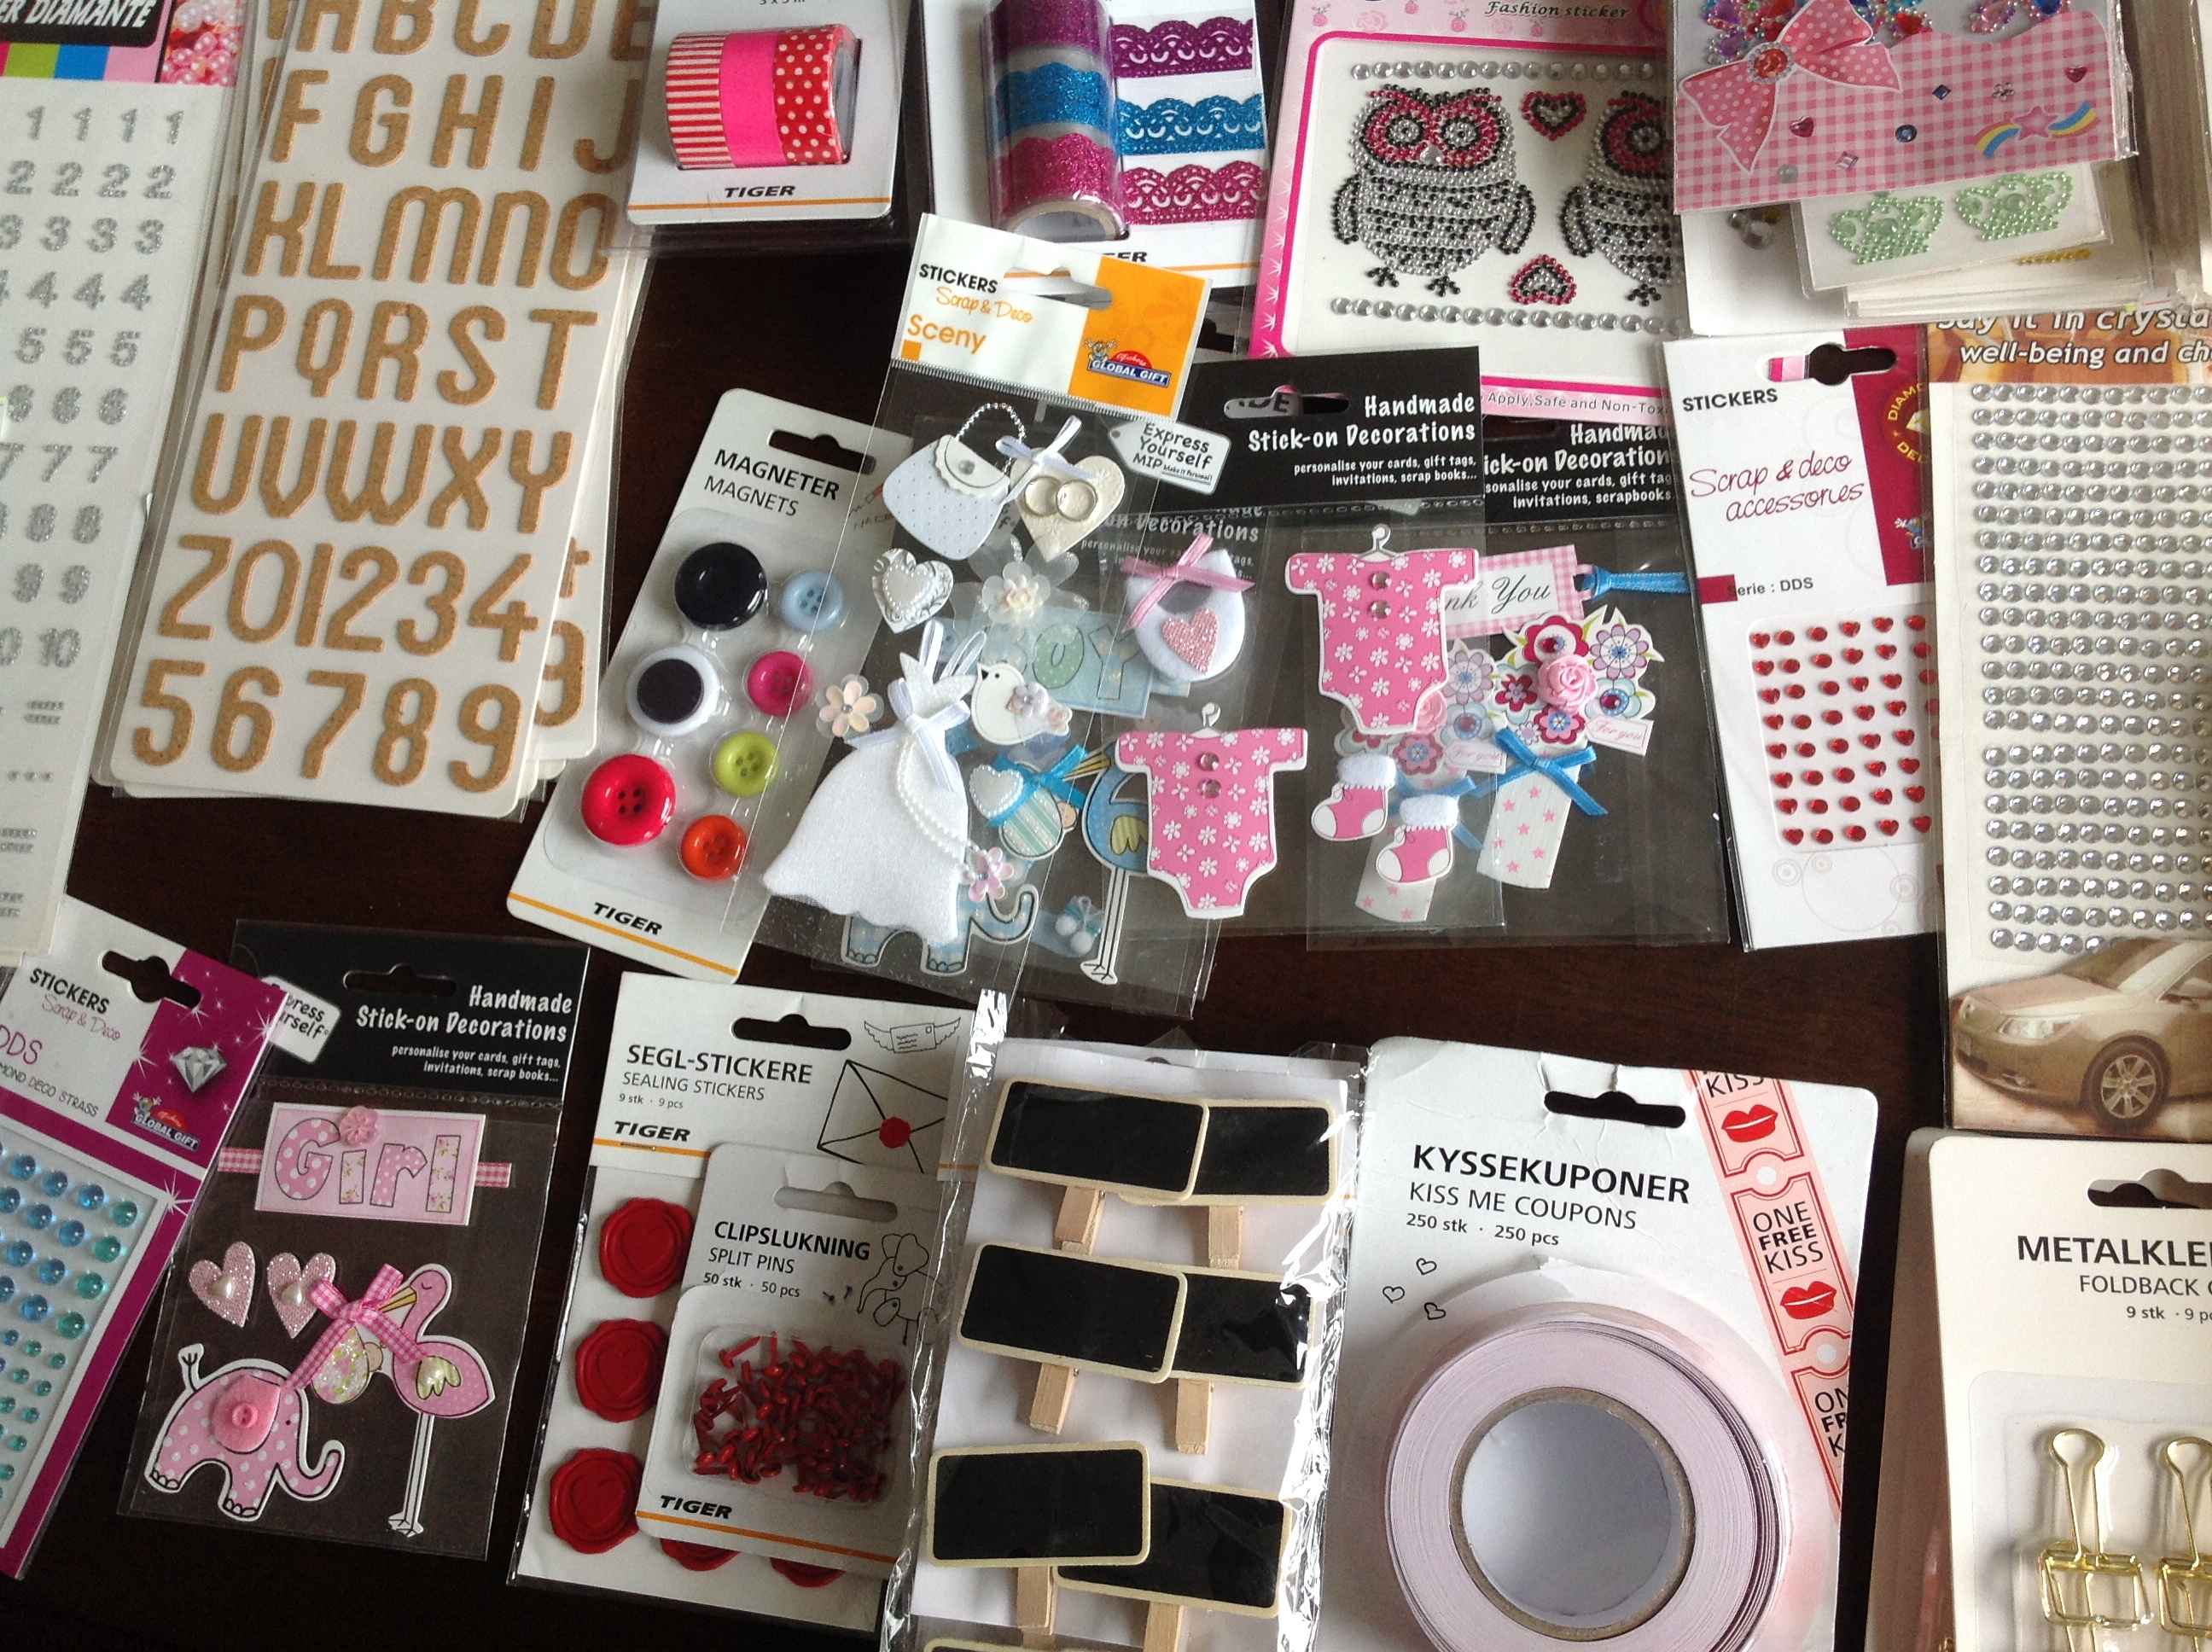 Compras de materiales para scrapbook 2